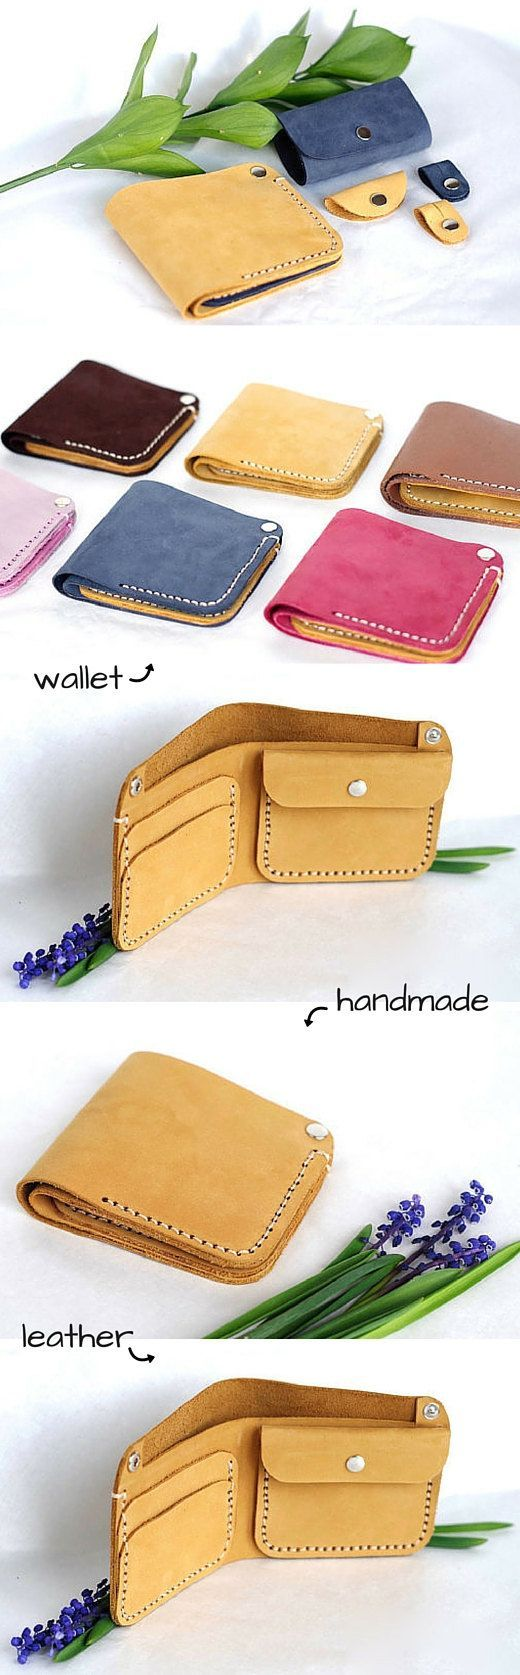 Play with the idea of merging this with my sketchbook bag idea, so I could just make my own little purse thing with compartments for everything. I could even sew my current wallet into it. awesome Yellow wallet, Simple wallet, Minimal wallet, Handmade wallet, Money clip, Leather money clip, Wallet case, Money clip wallet, Woman wallet